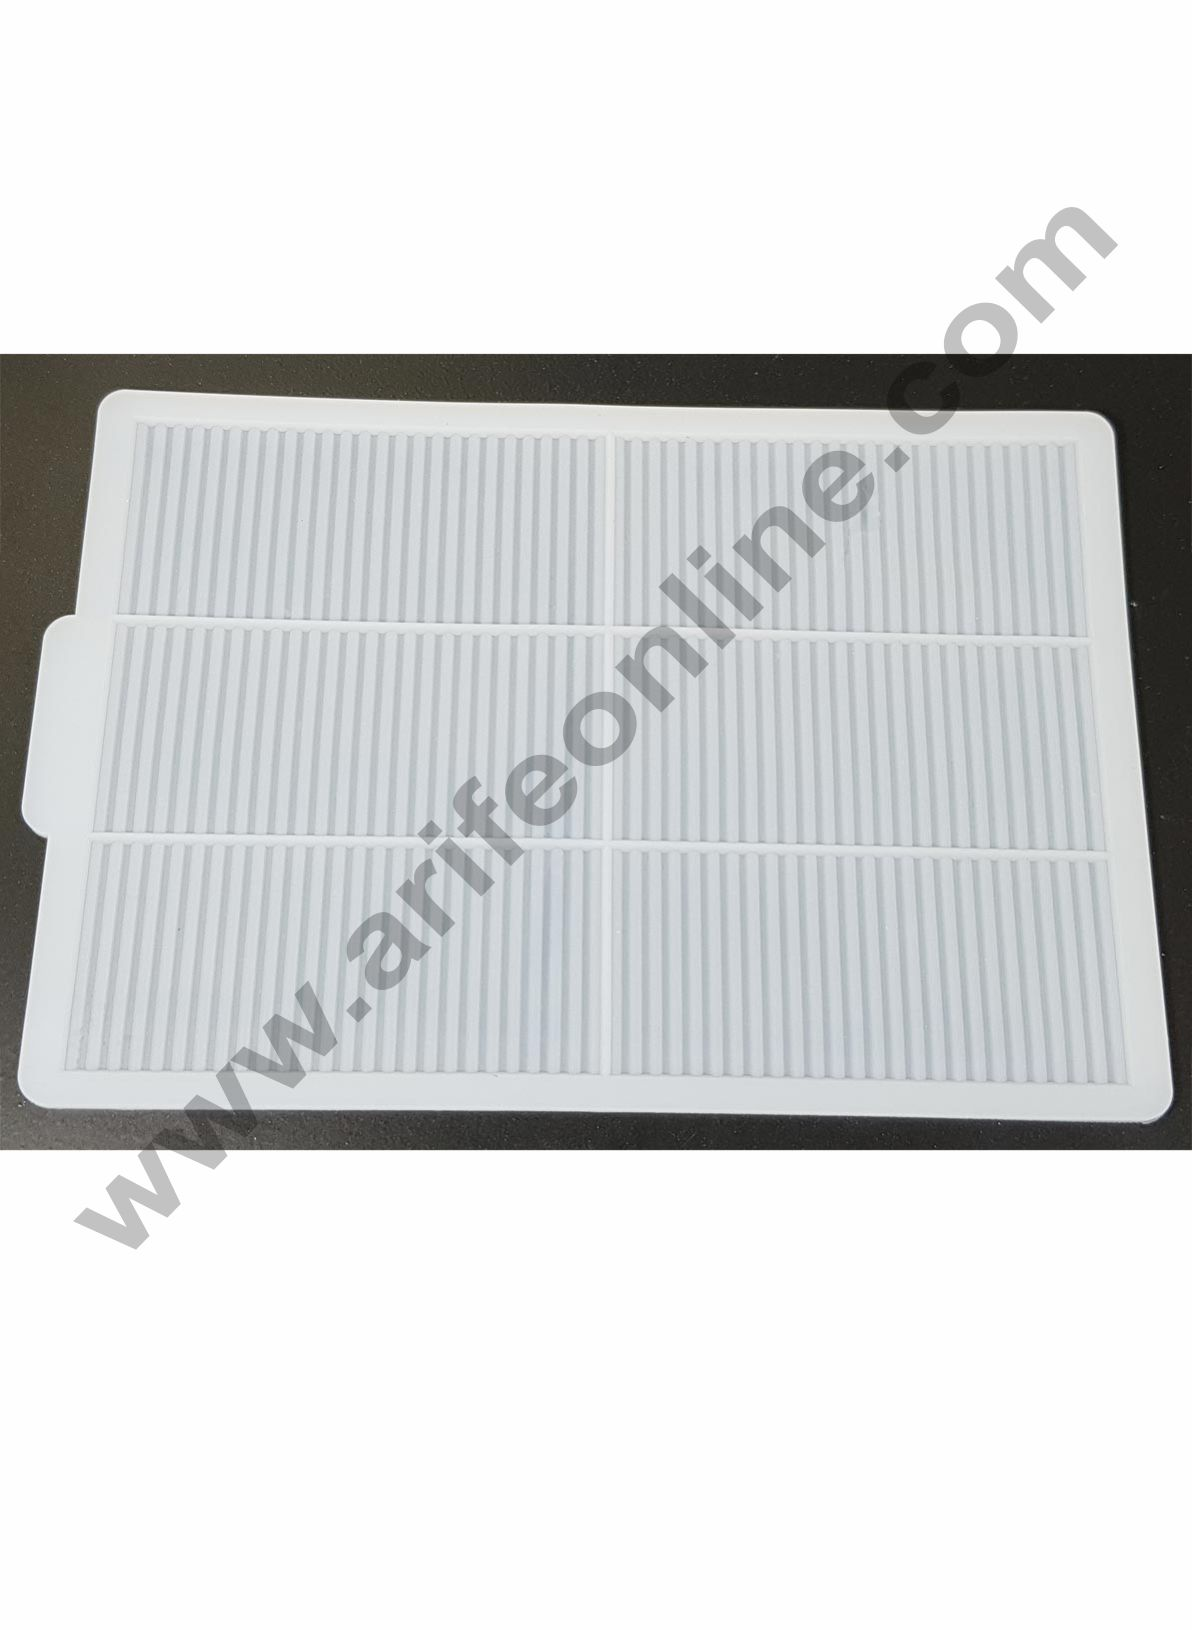 Cake Decor Silicon 6 in 1 Rectangle Straight Line Shape Chocolate Garnishing Mould Cake Insert Decoration Mould